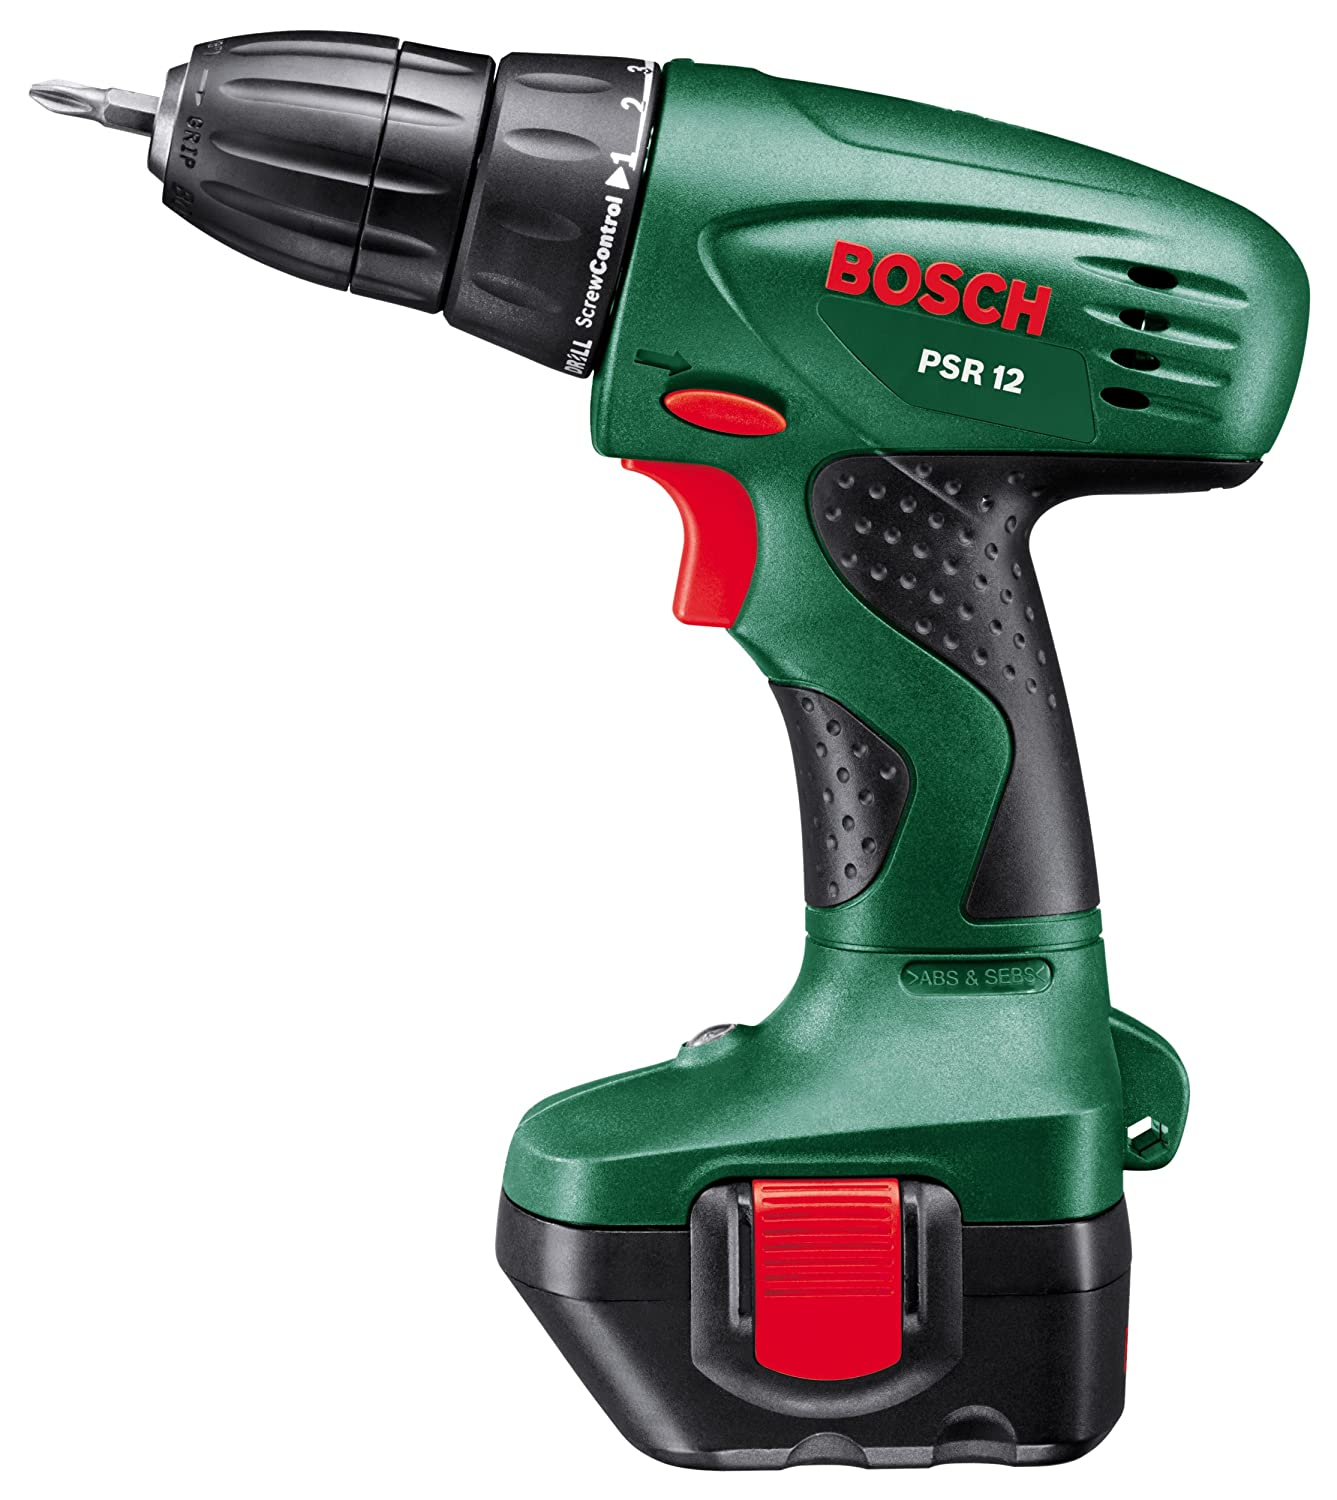 c512a43e3b4e0c Bosch PSR 12 Cordless NiCad Drill Driver with 1 x 12 V Battery, 1.2 Ah   Amazon.co.uk  DIY   Tools